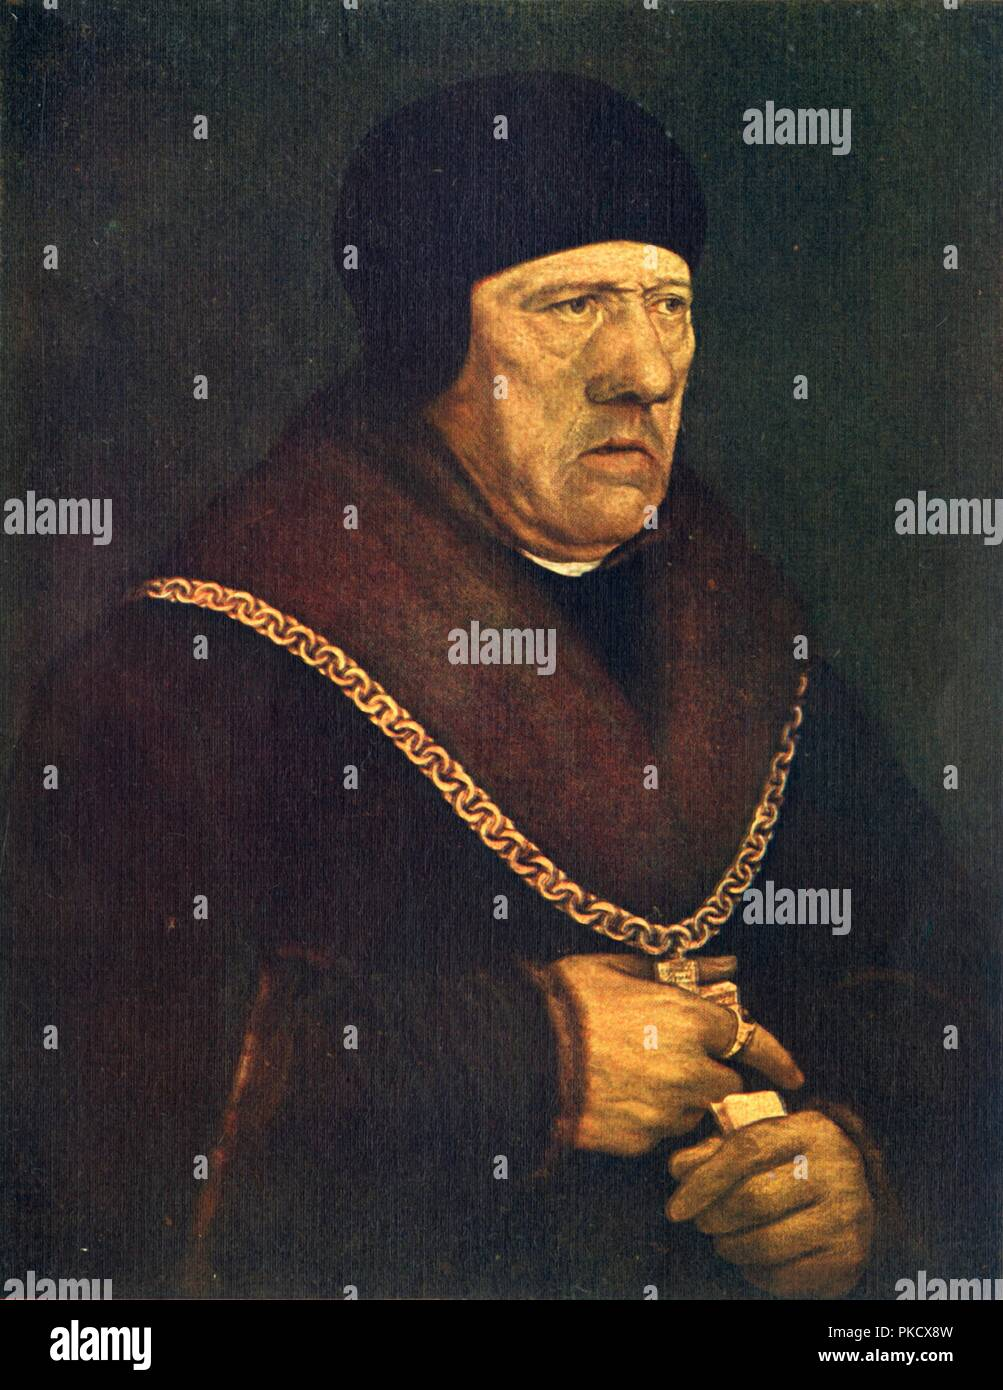 'Sir Henry Wyatt', c1537, (1909). Artist: Hans Holbein the Younger. - Stock Image